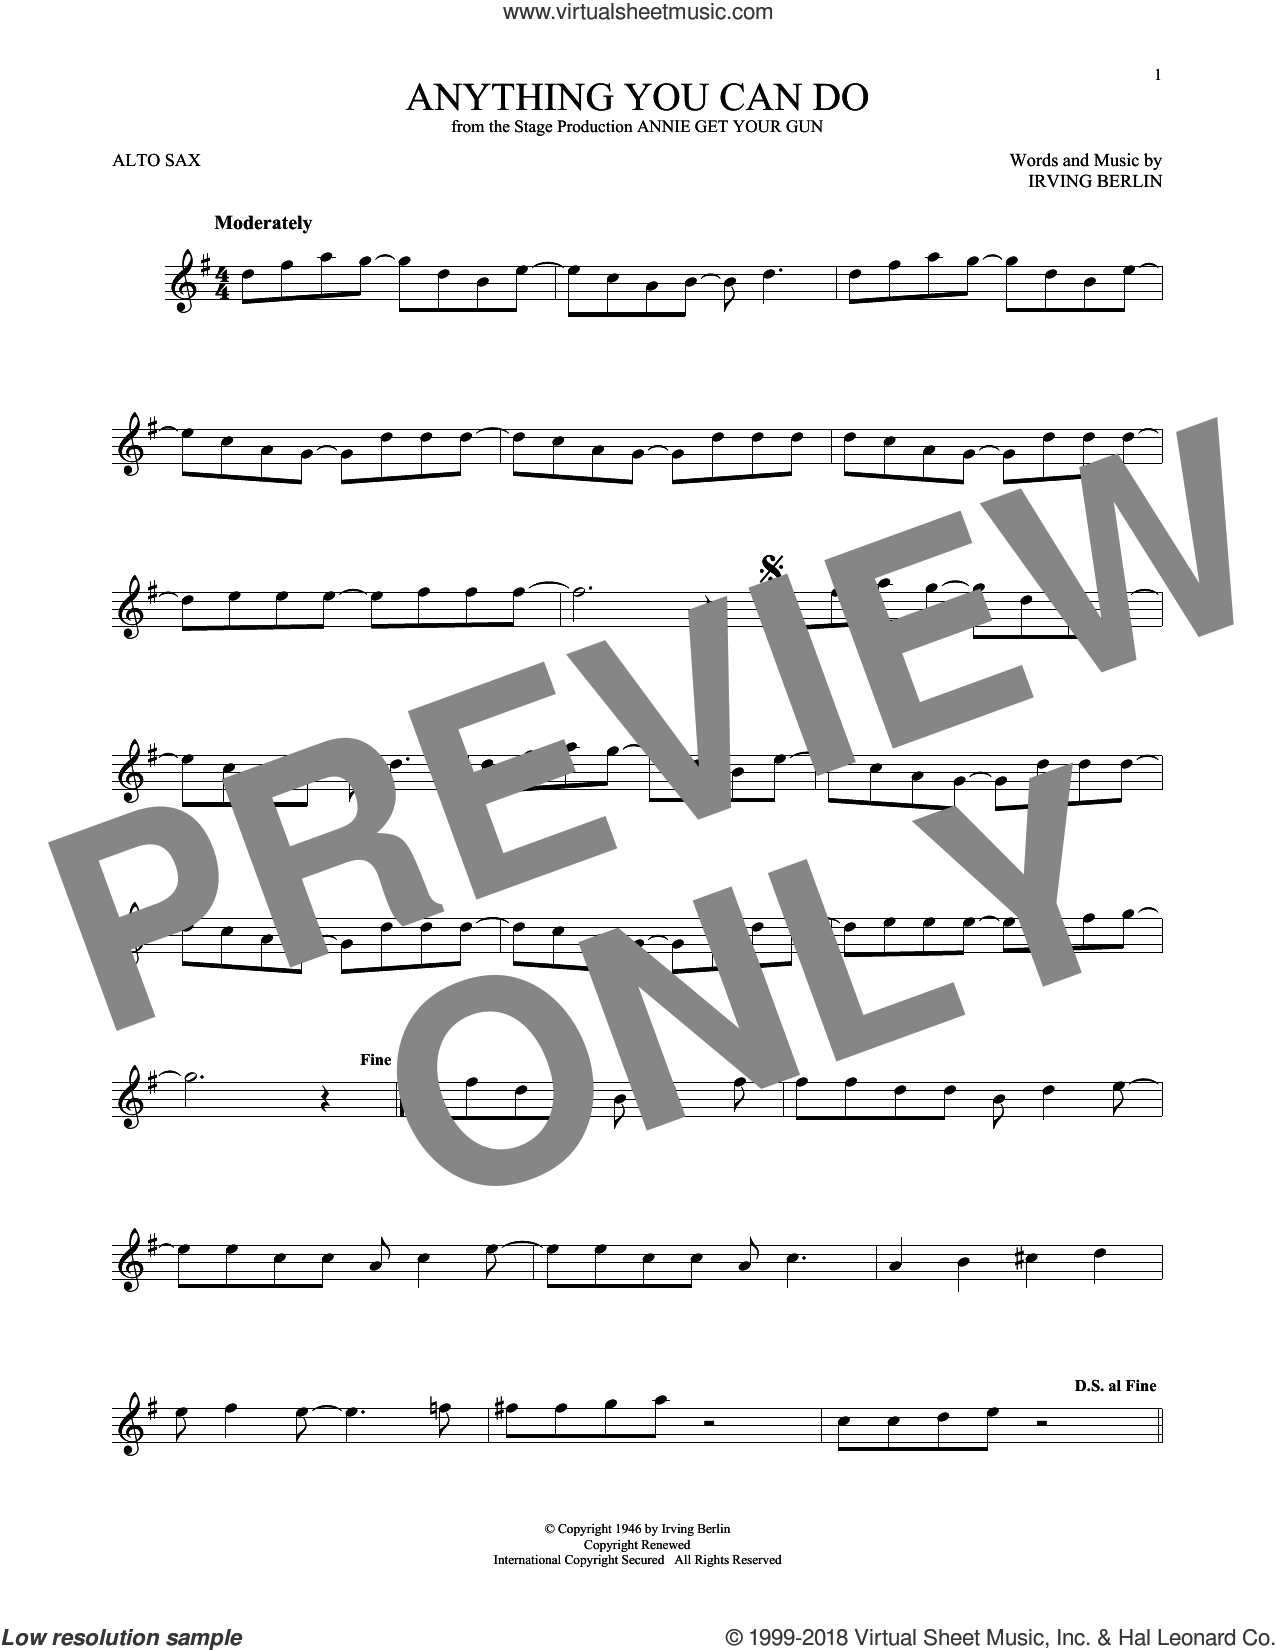 Anything You Can Do sheet music for alto saxophone solo by Irving Berlin, intermediate skill level